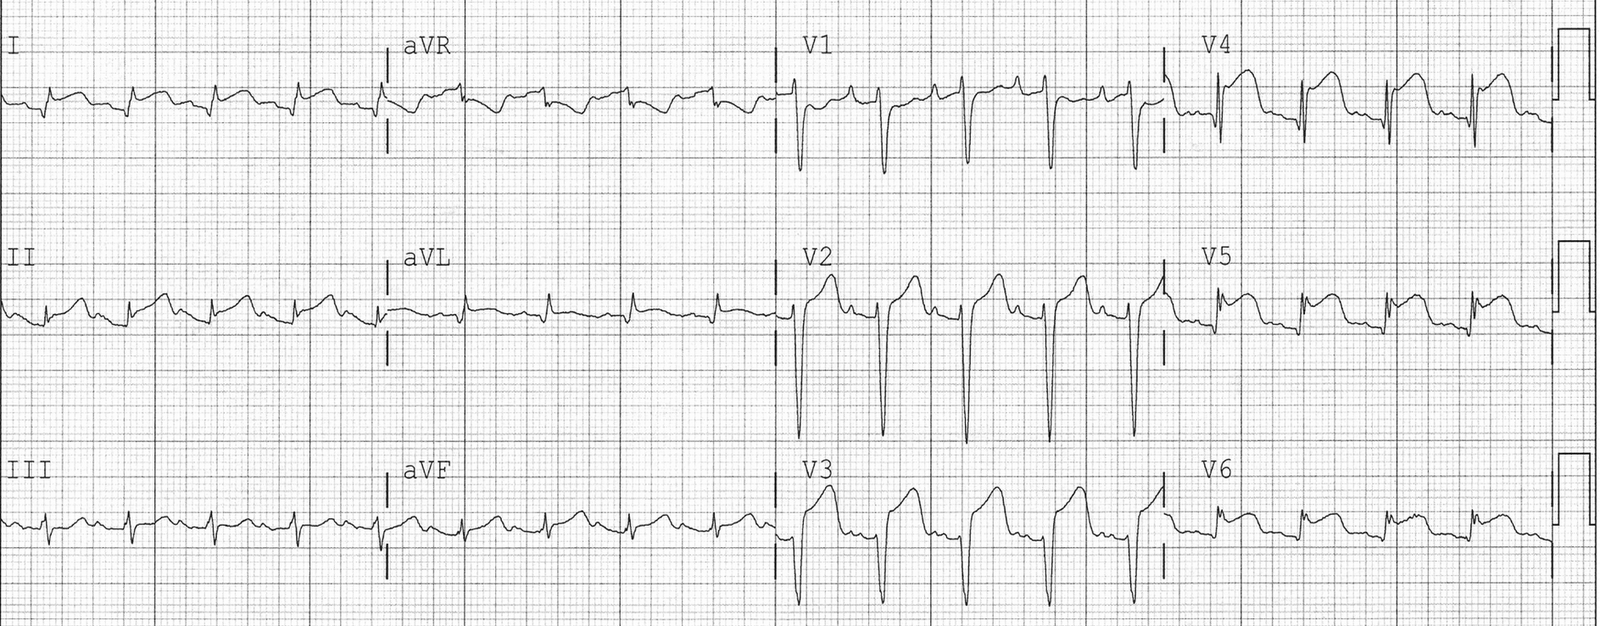 Dr. Smith's ECG Blog: Two more Cases of Takotsubo Stress